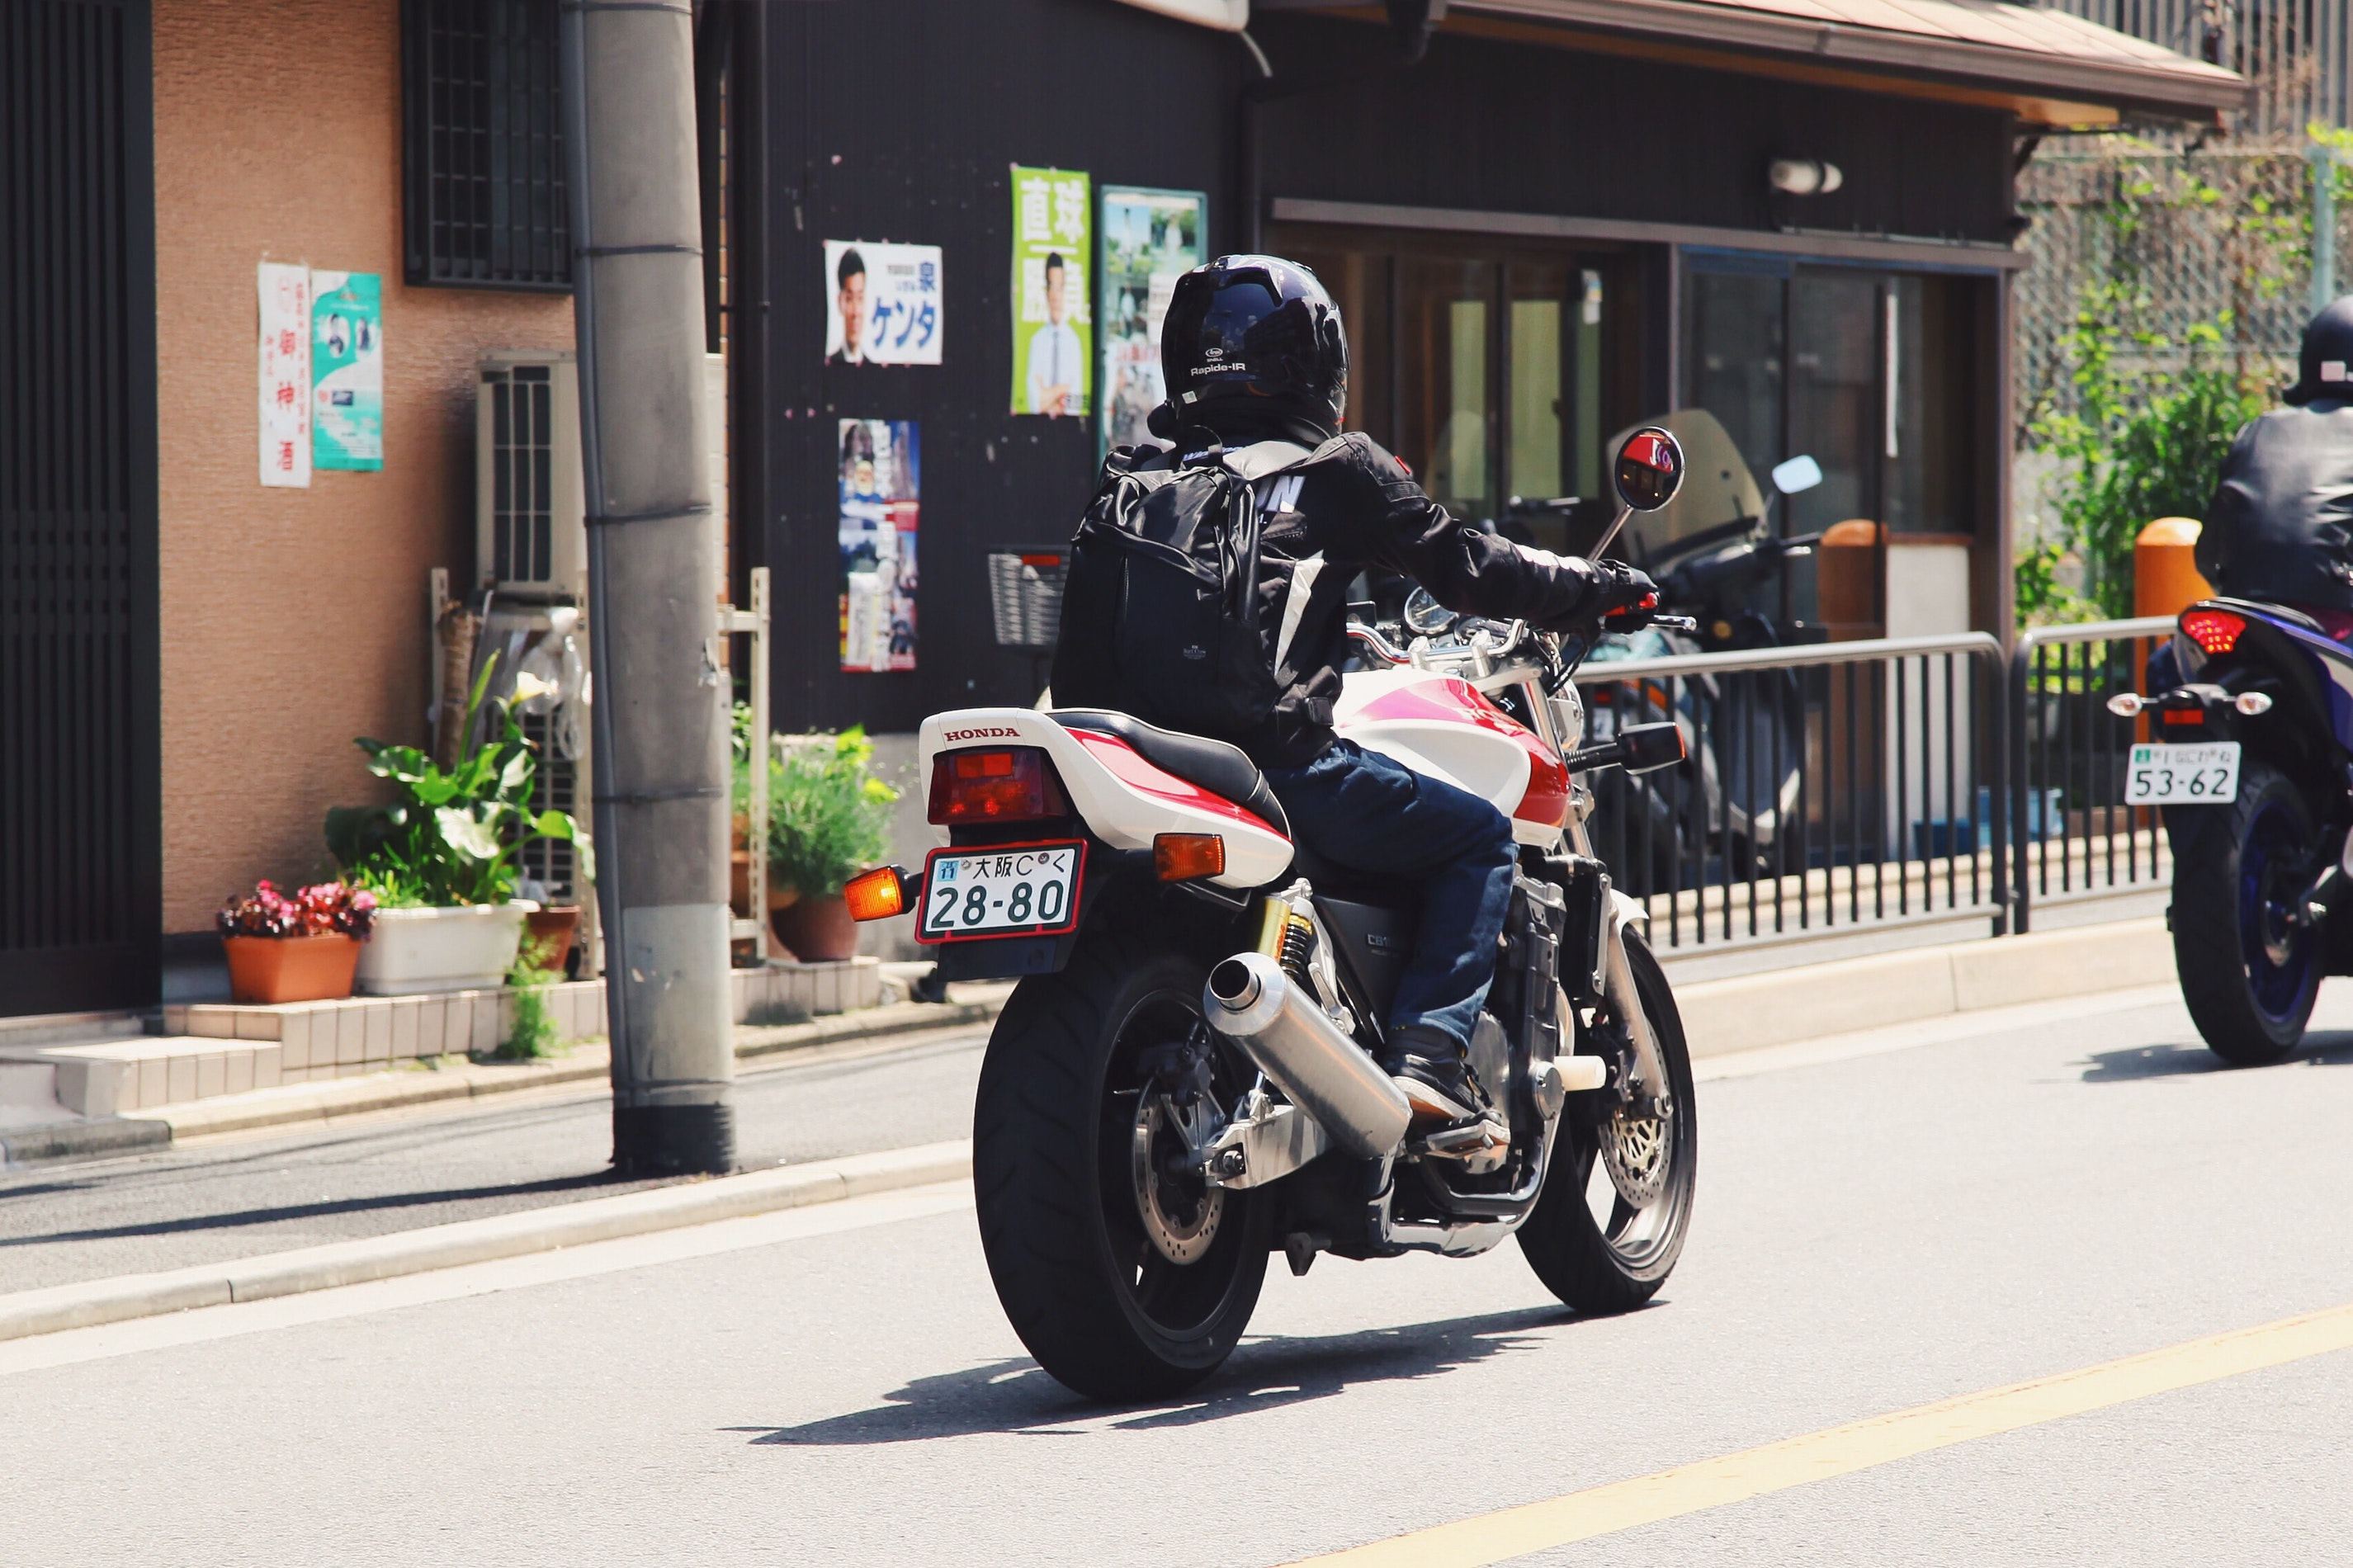 Preparing for A Consultation with a Motorcycle Accident Attorney